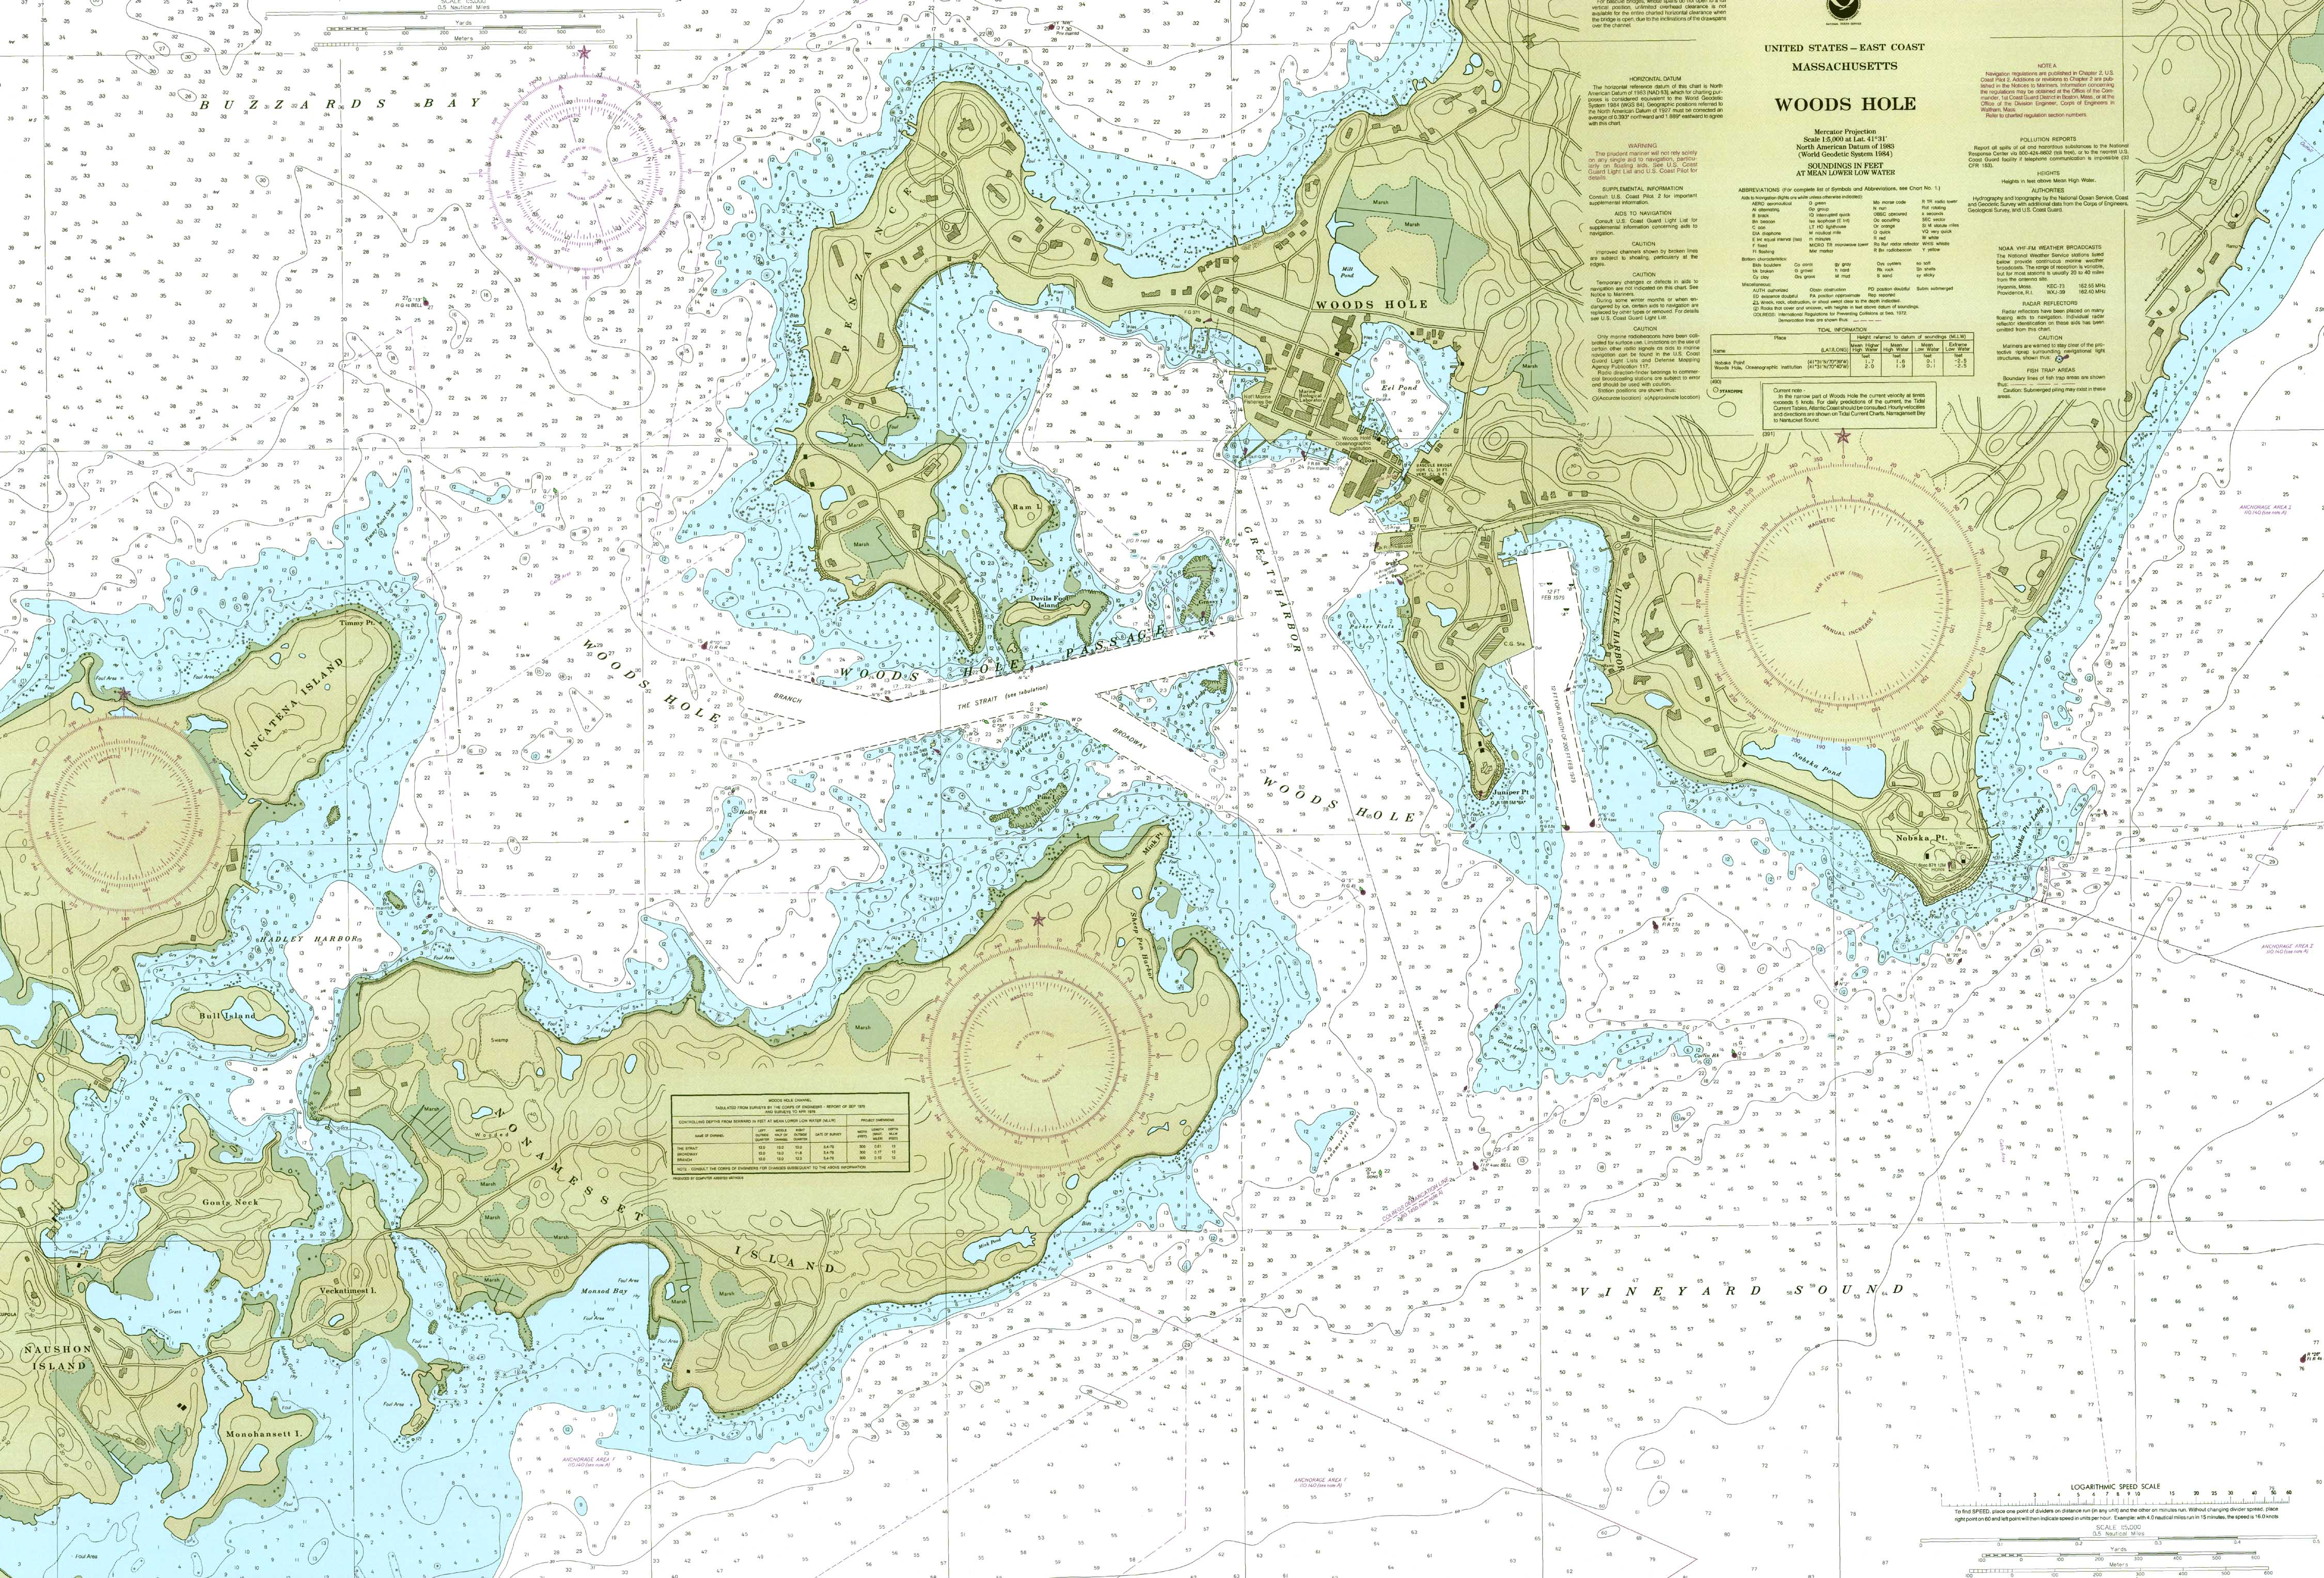 Nautical charts buzzards bay national estuary program click here to open a screensize 60 wide x 40 tall version 33 mb version of this map geenschuldenfo Gallery